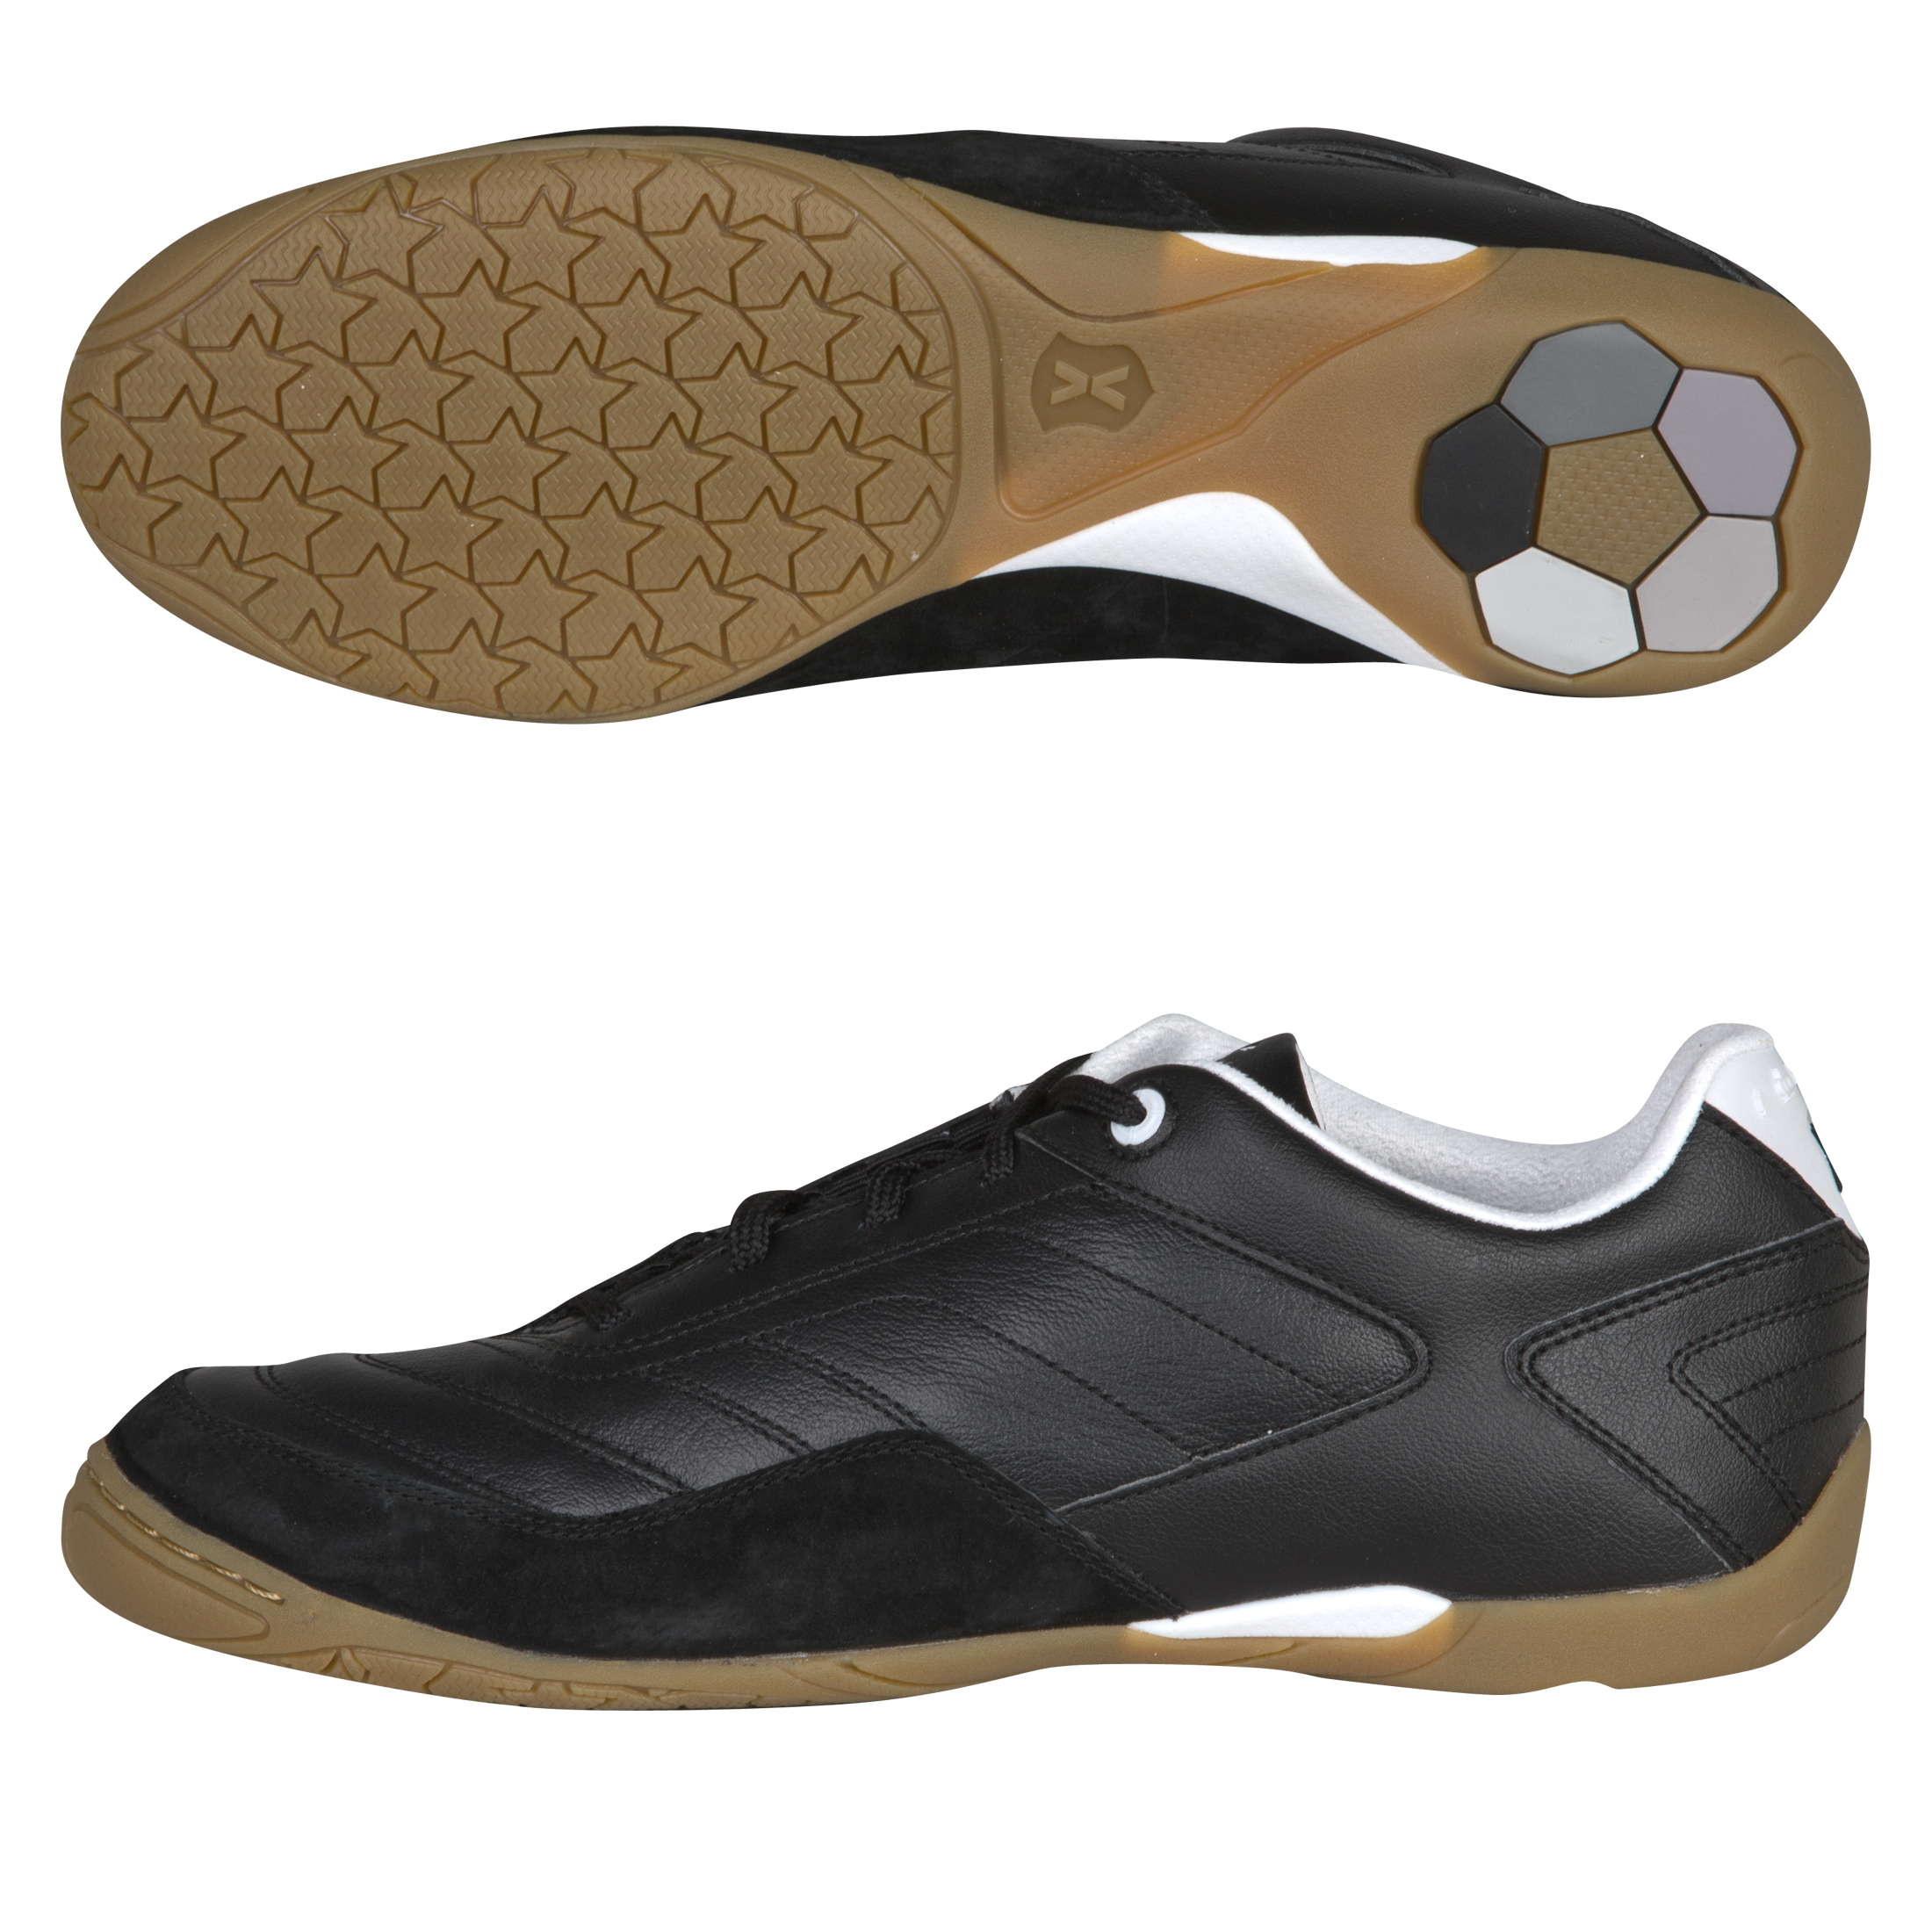 Pele Sports Radium Futsal Trainers - Black/Running White